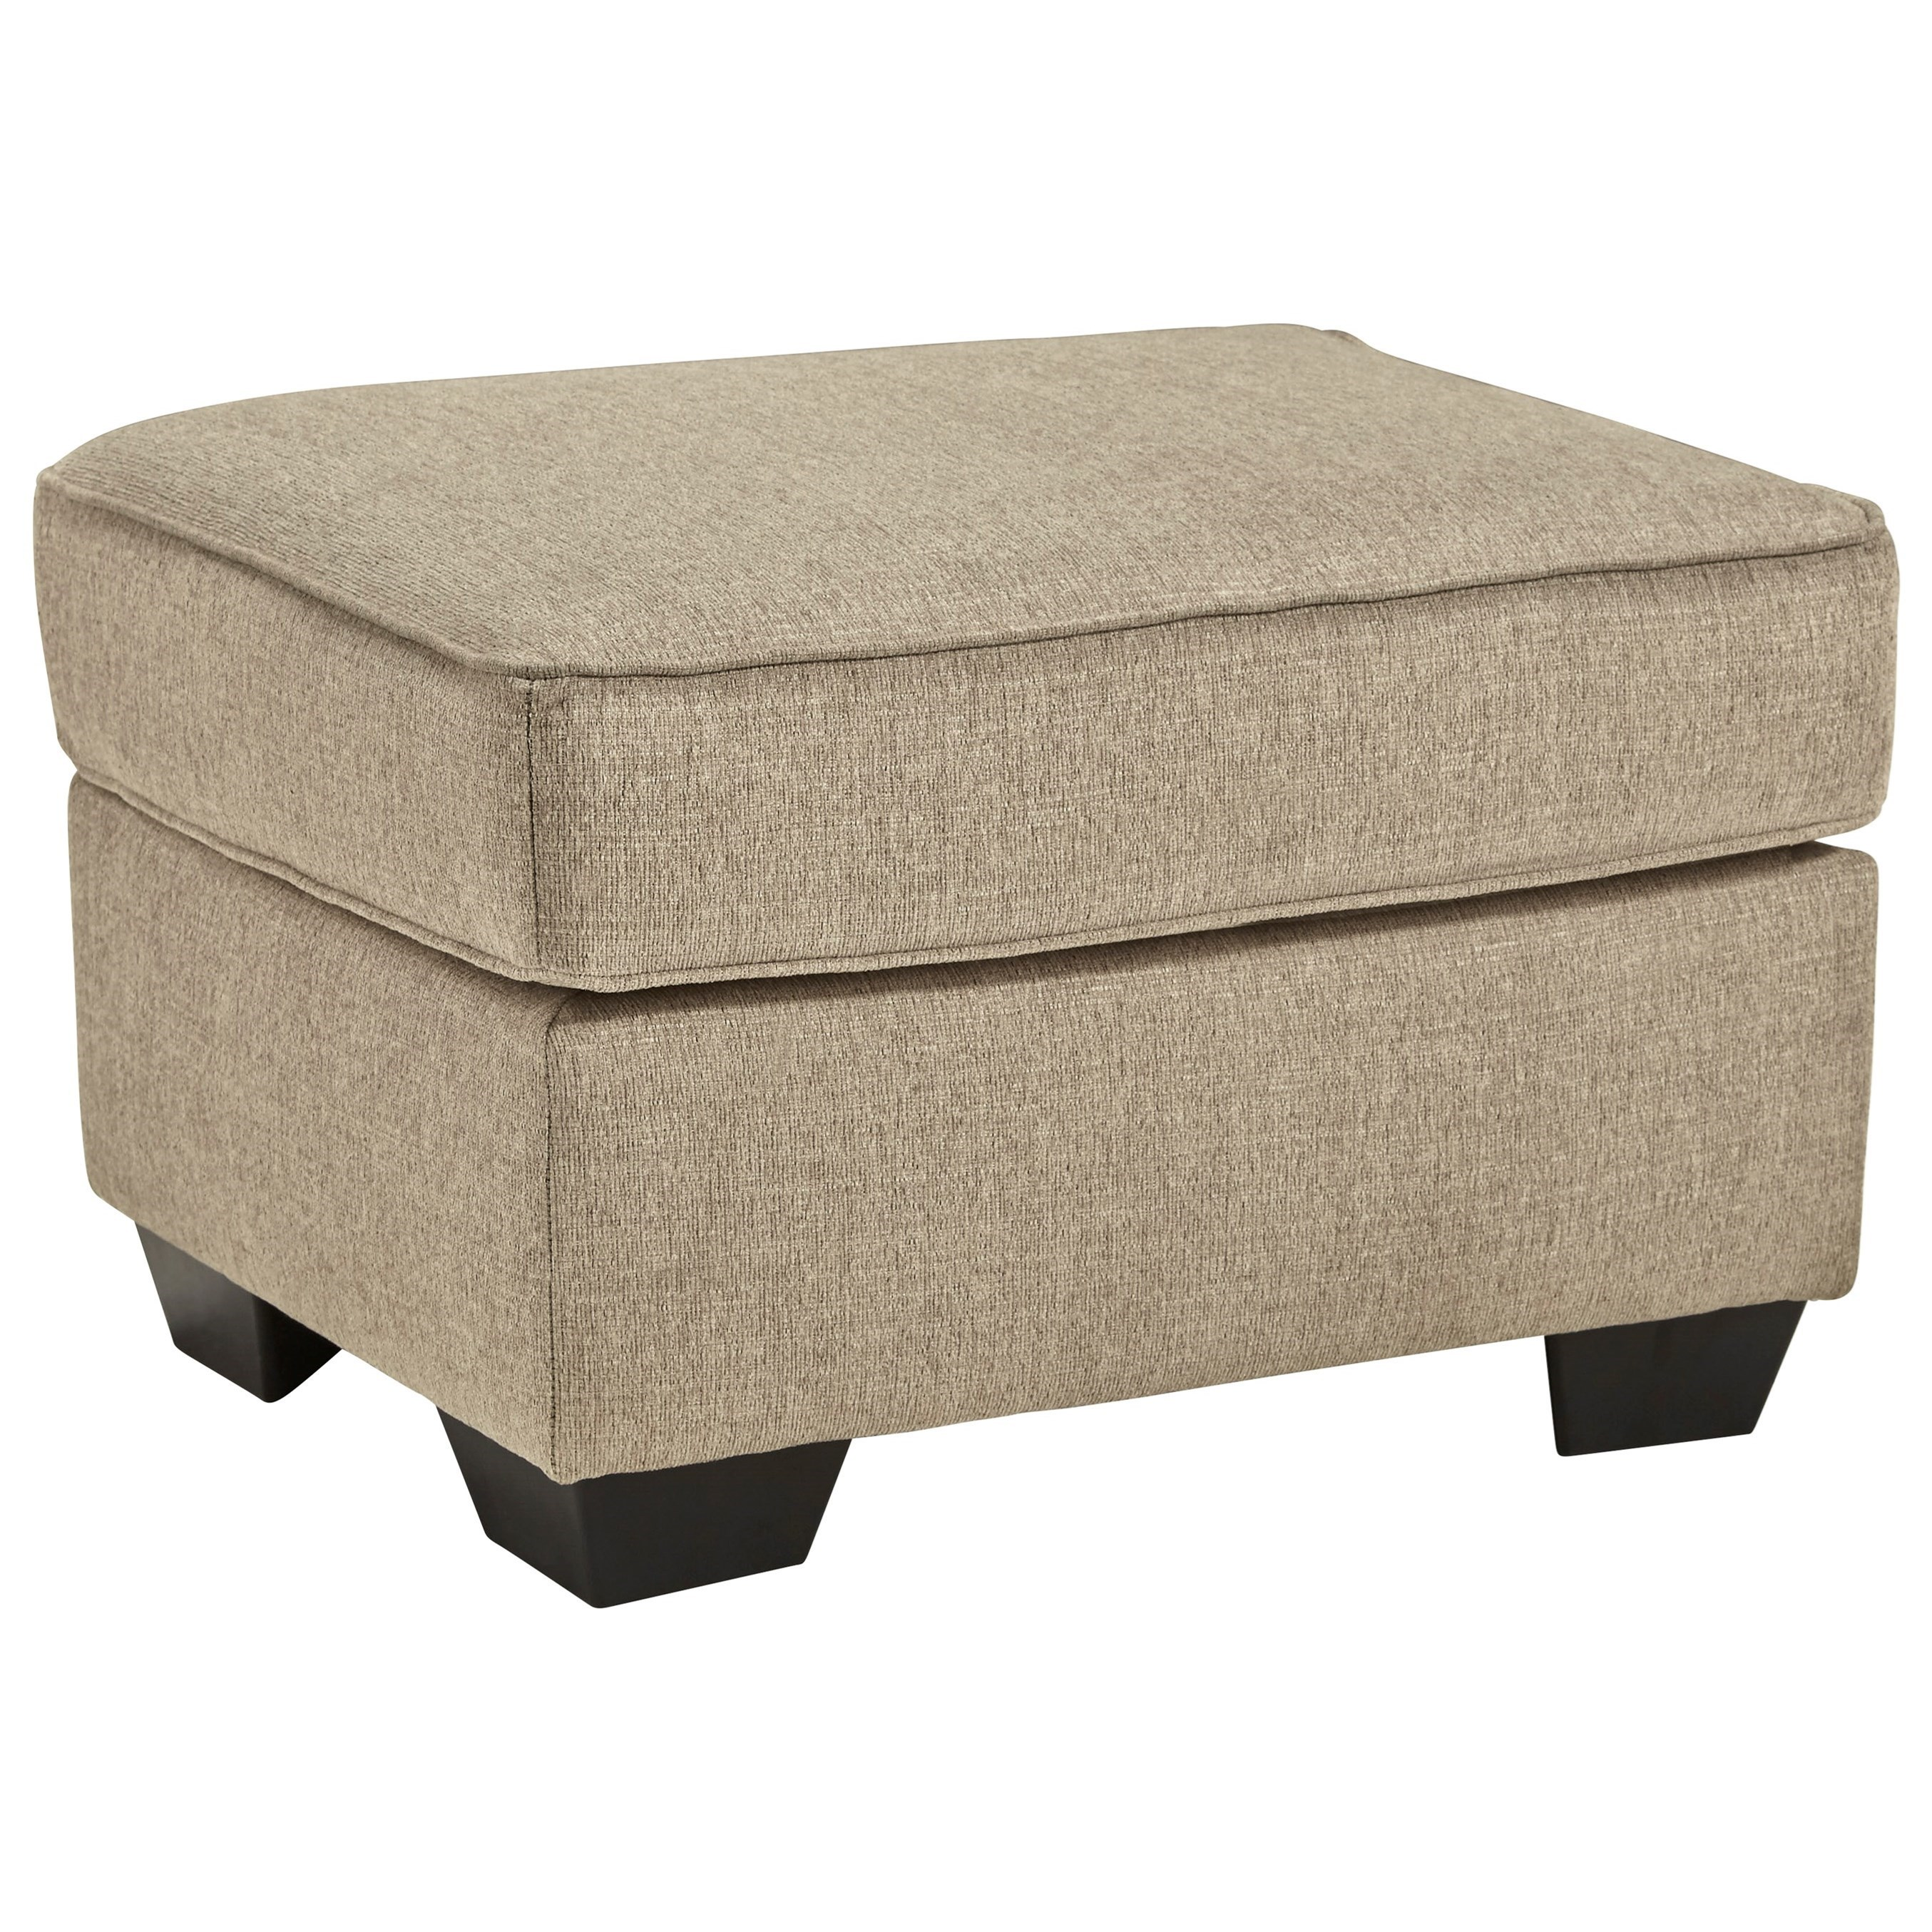 Ardmead Ottoman by Benchcraft at Factory Direct Furniture